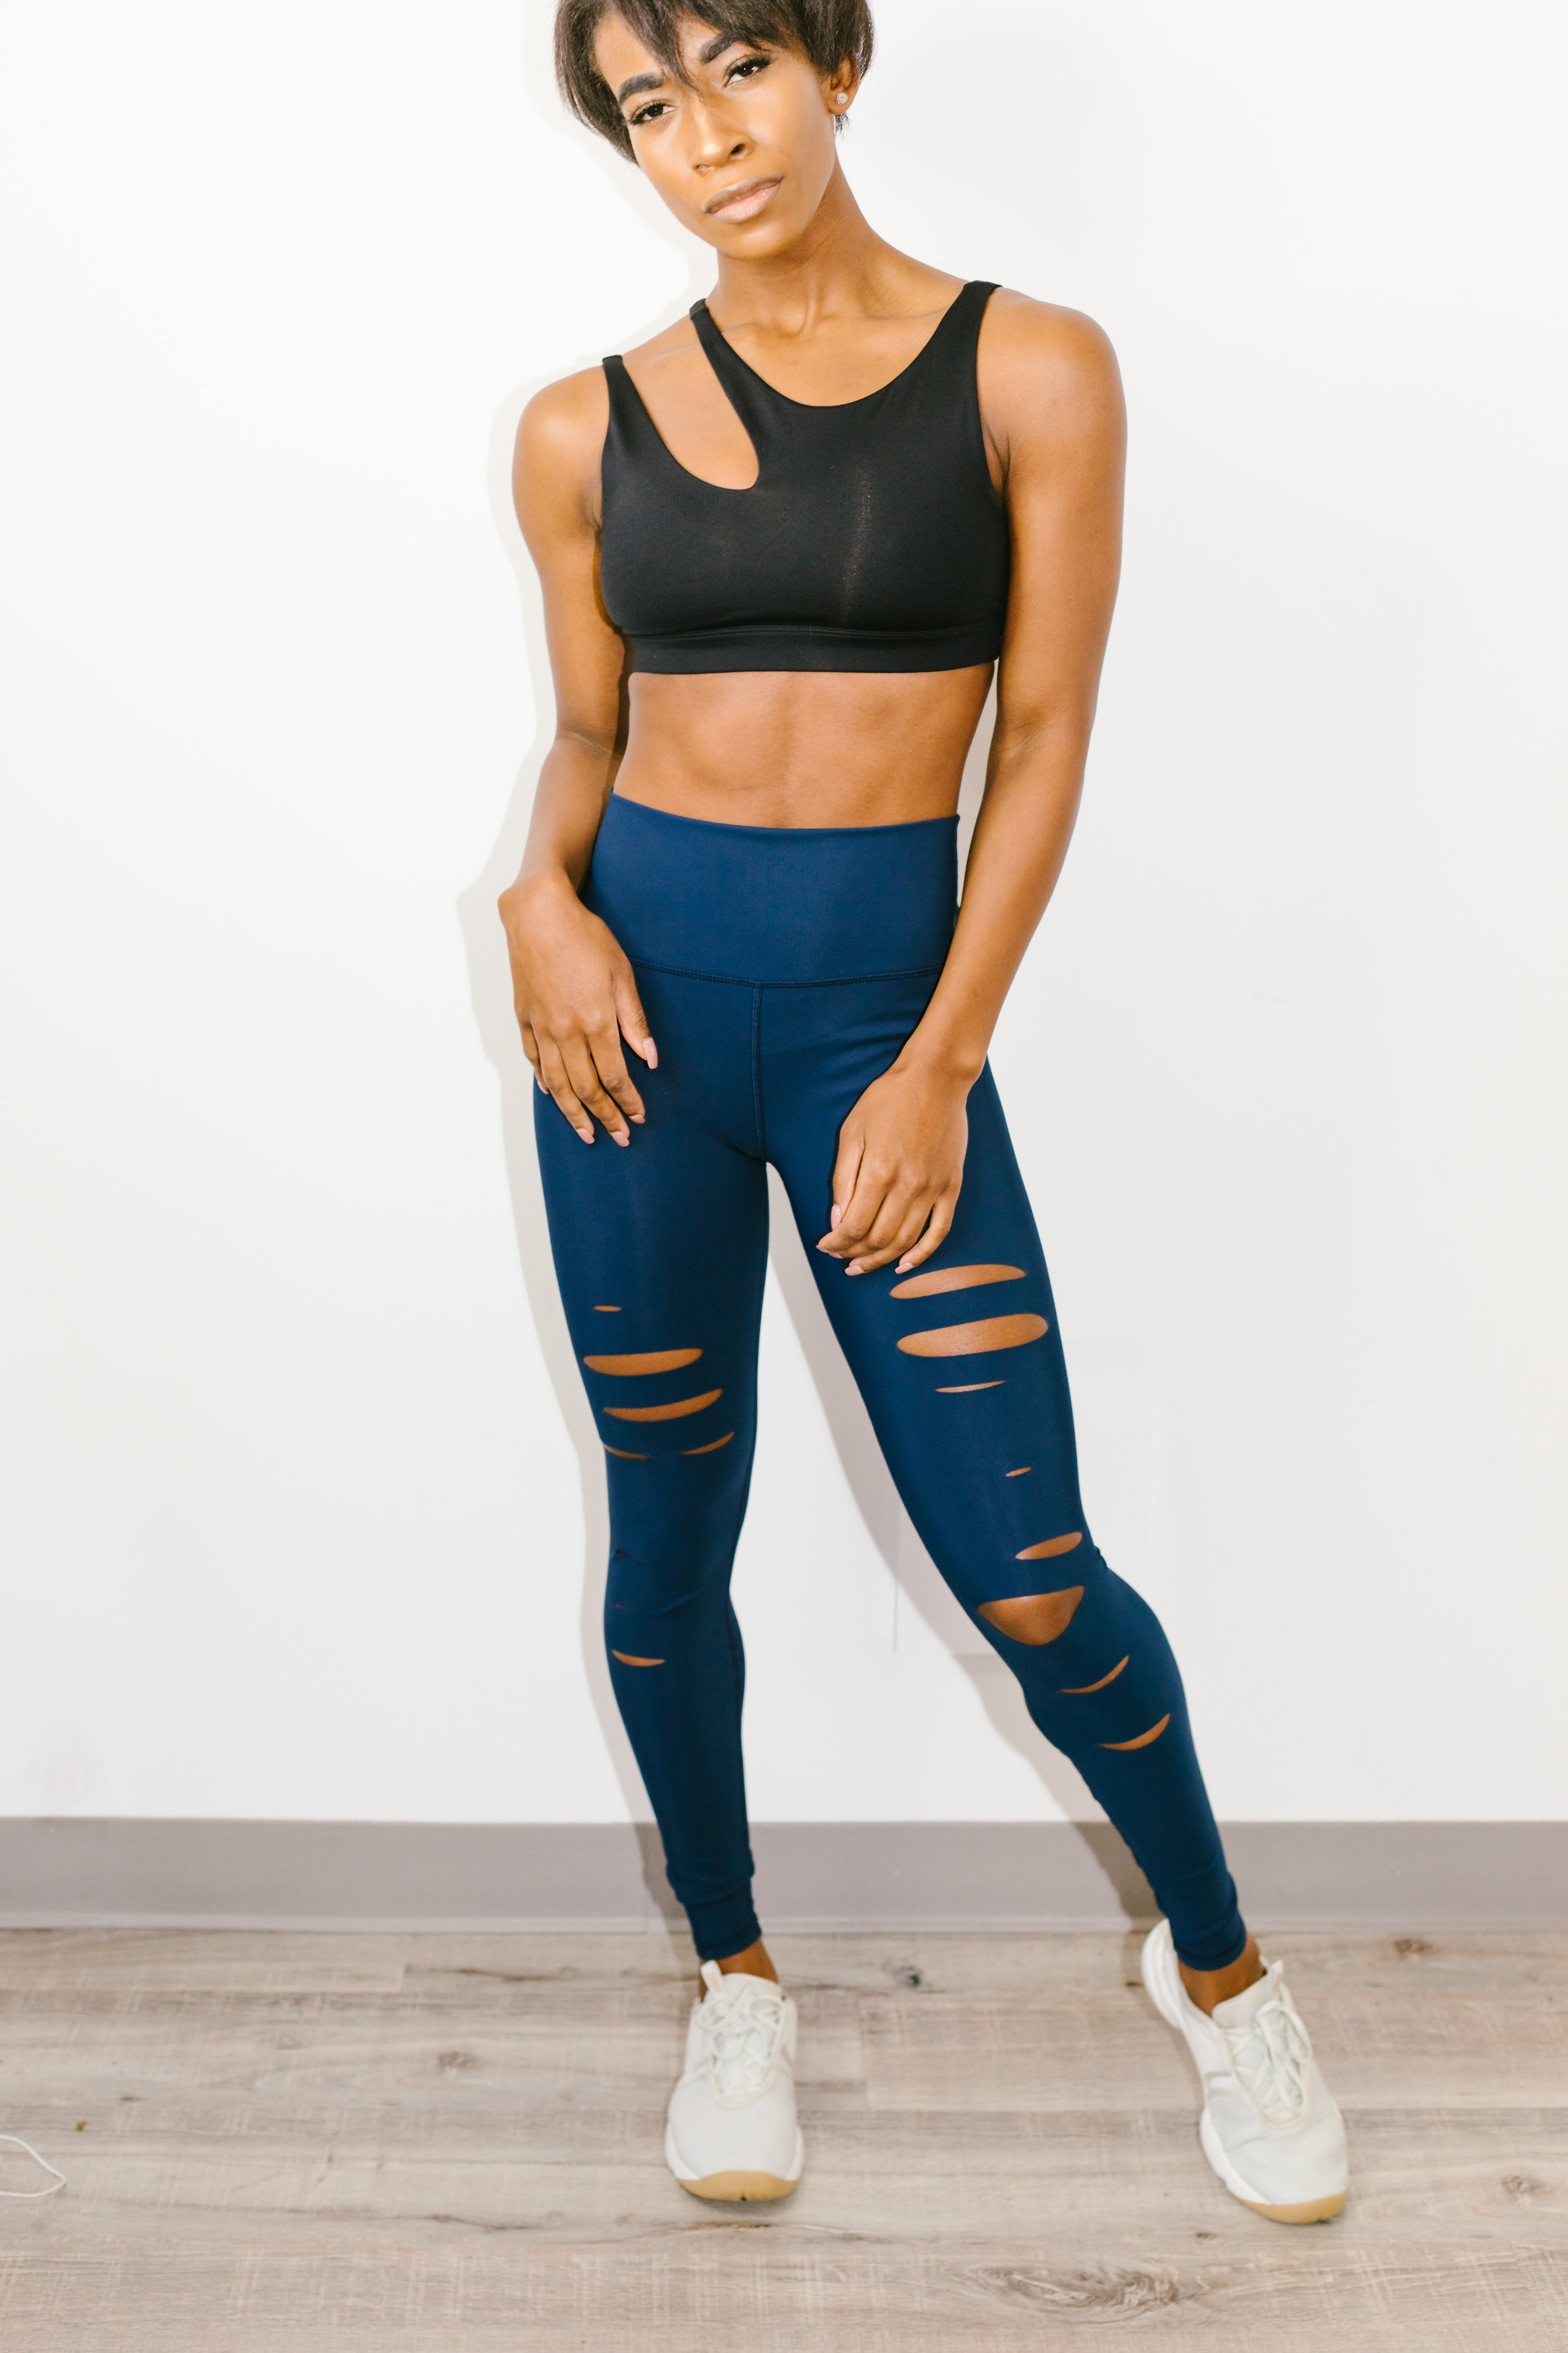 High Waist Ripped Warrior Legging Navy By Alo Yoga At Orchard Mile